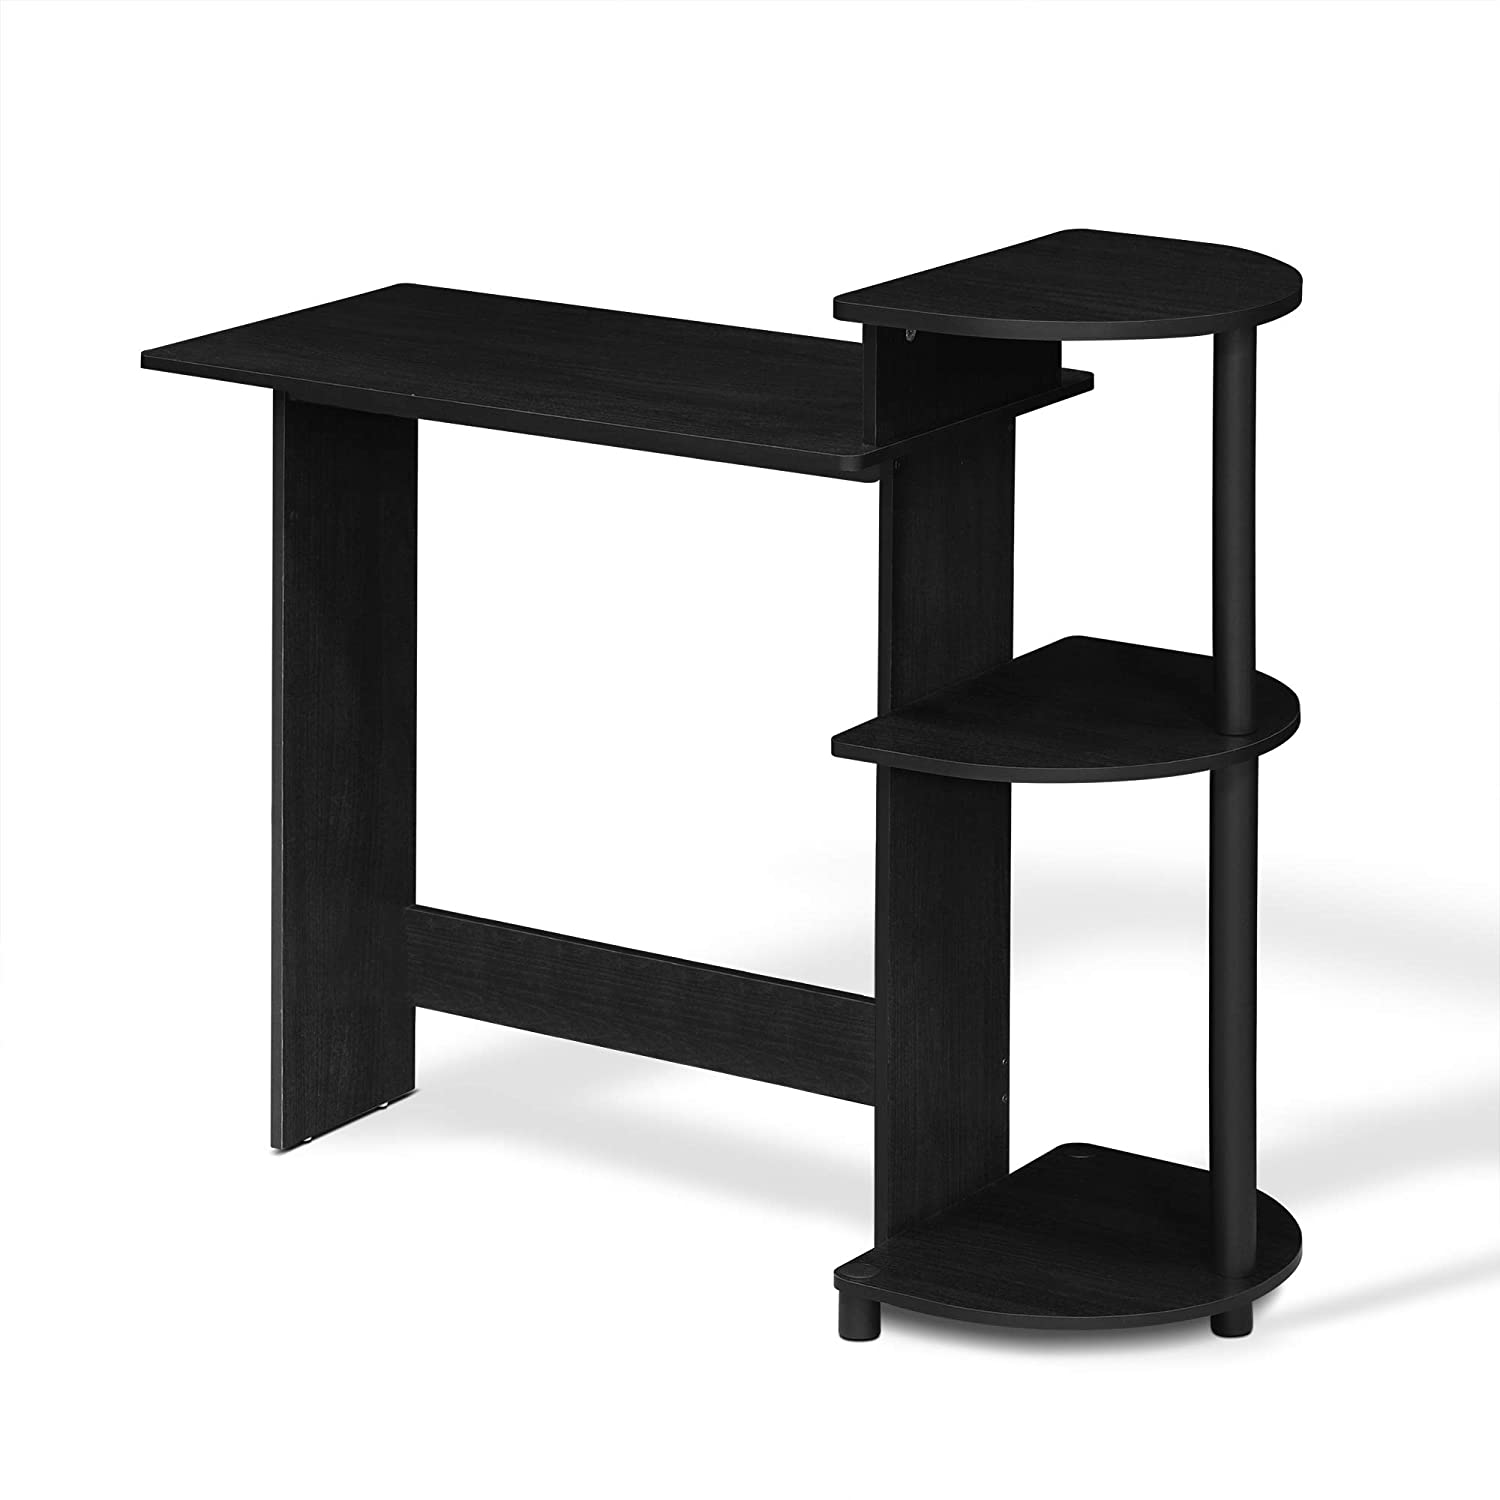 FURINNO 11181AM/BK Compact Computer Desk with Shelves, Round Side, Americano/Black